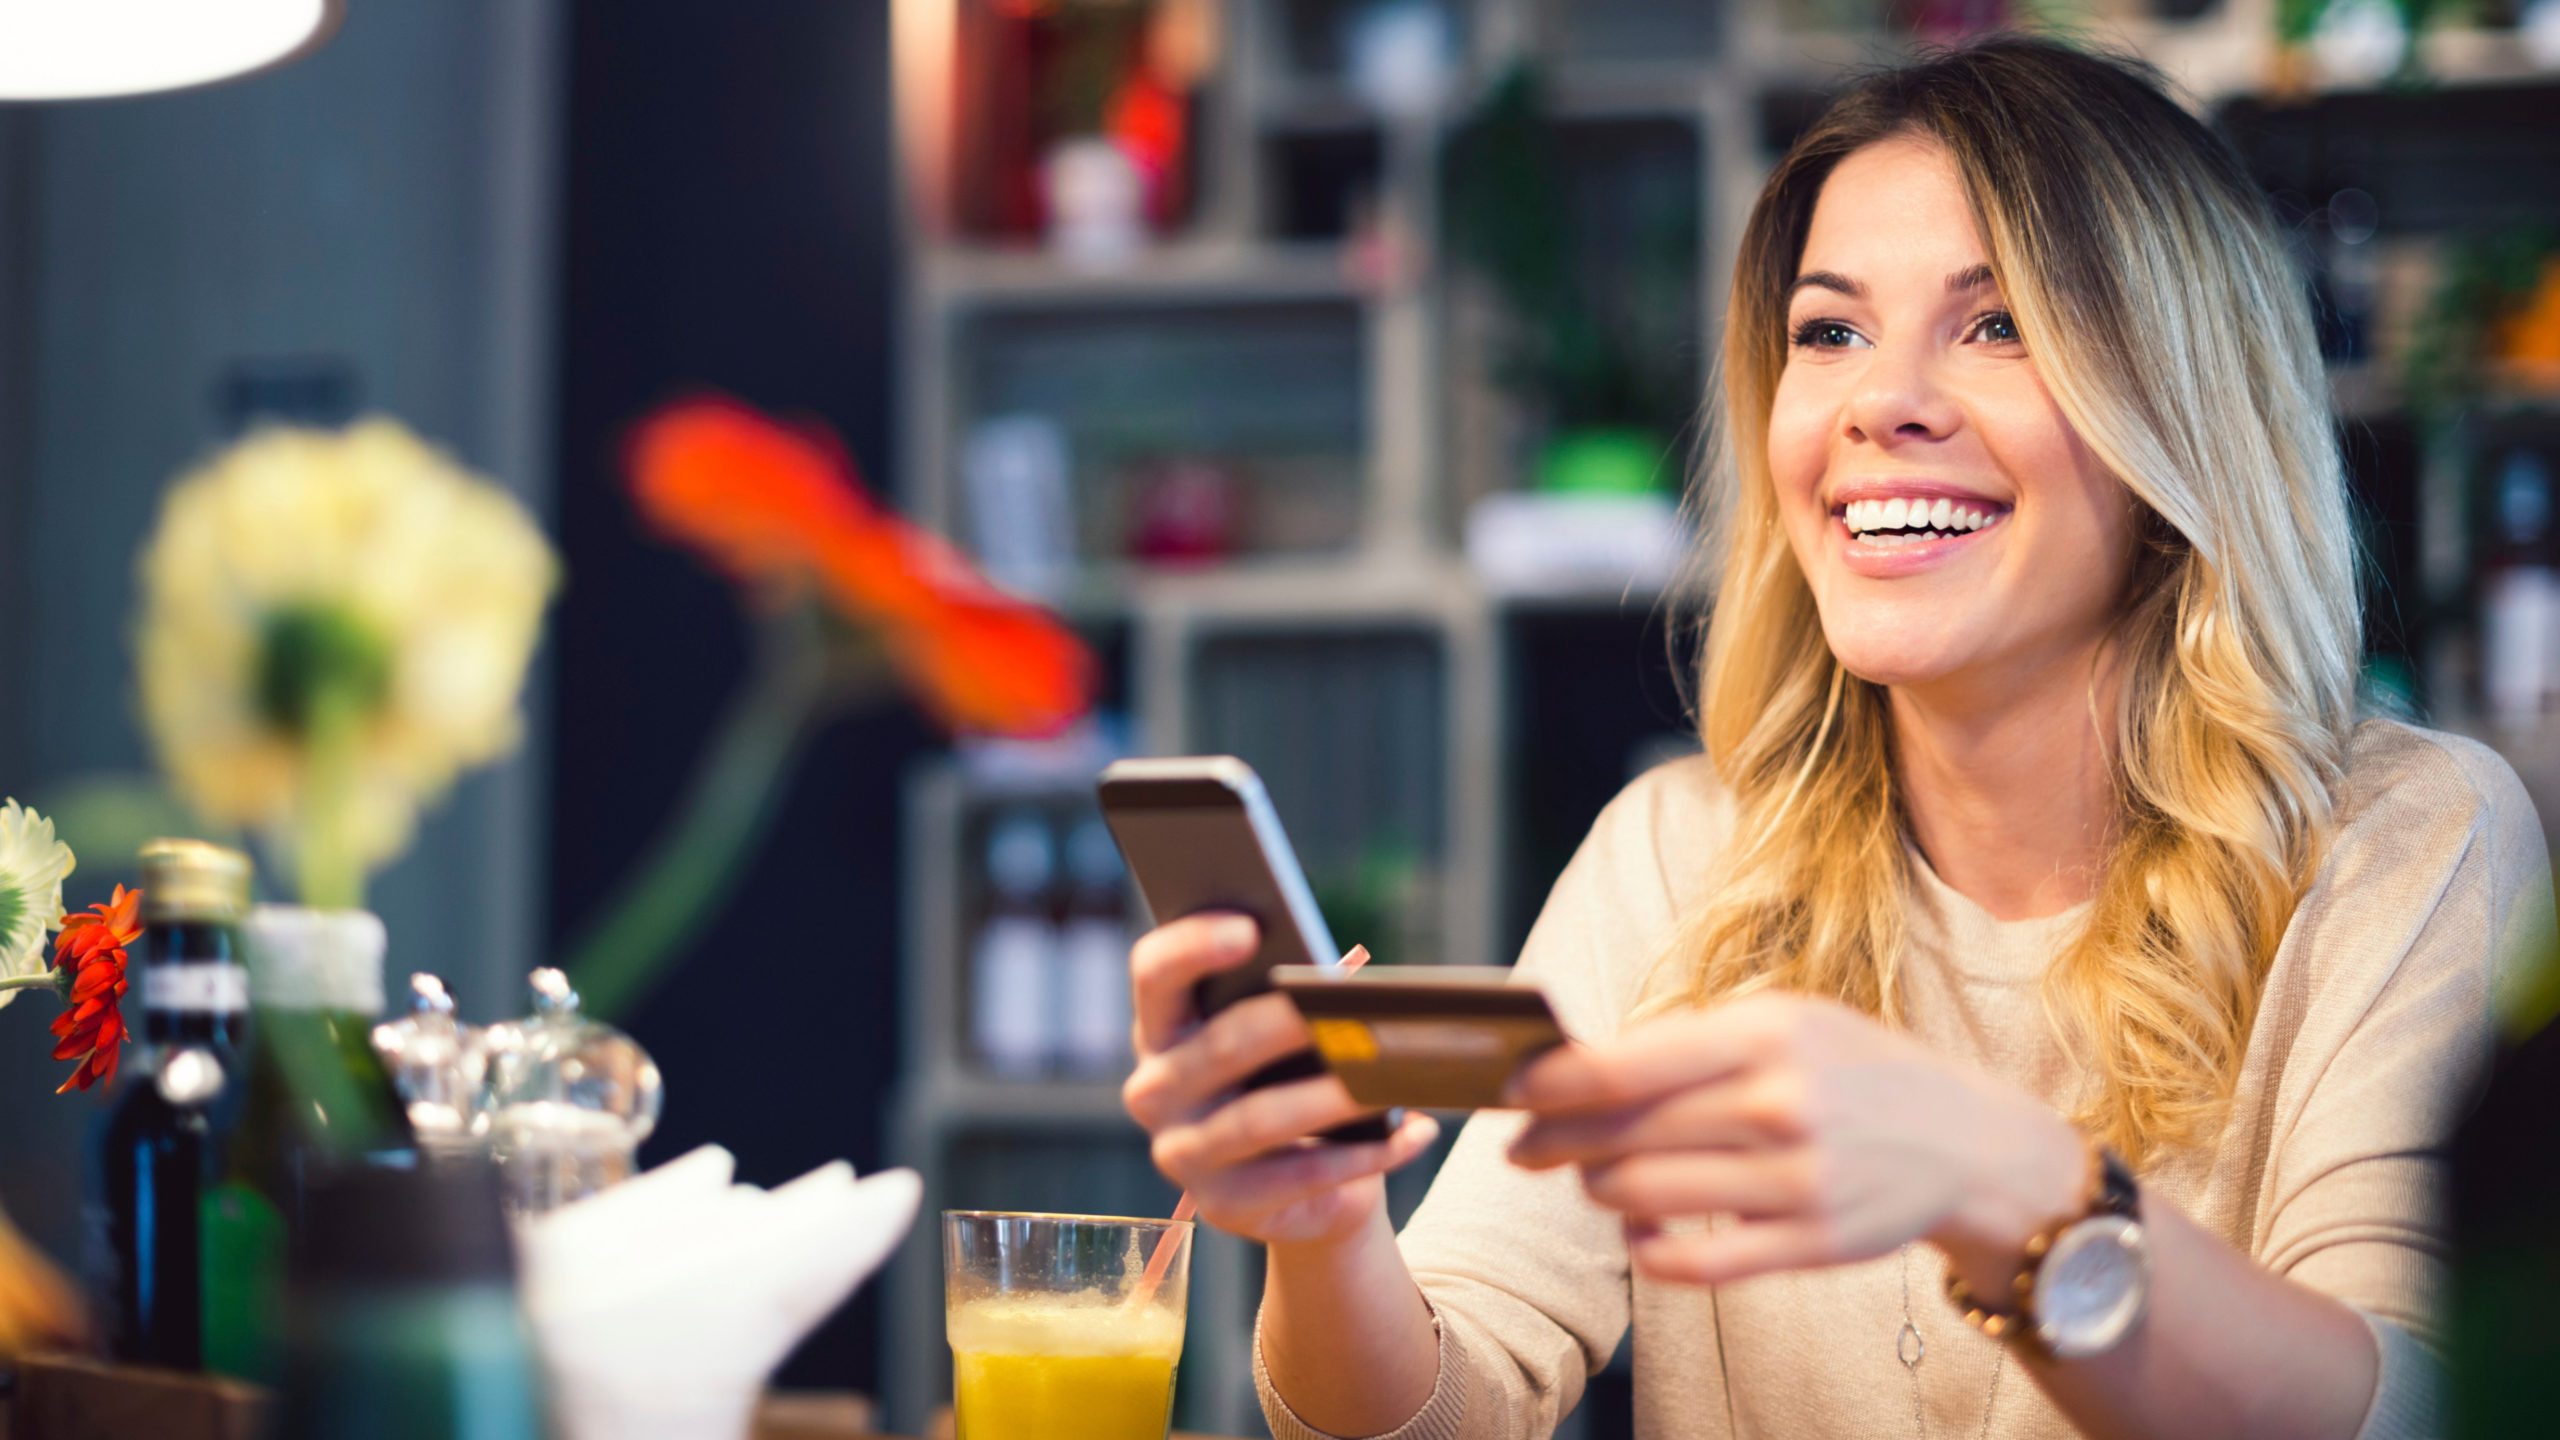 Smiling woman reading text messages over dinner in a bistro